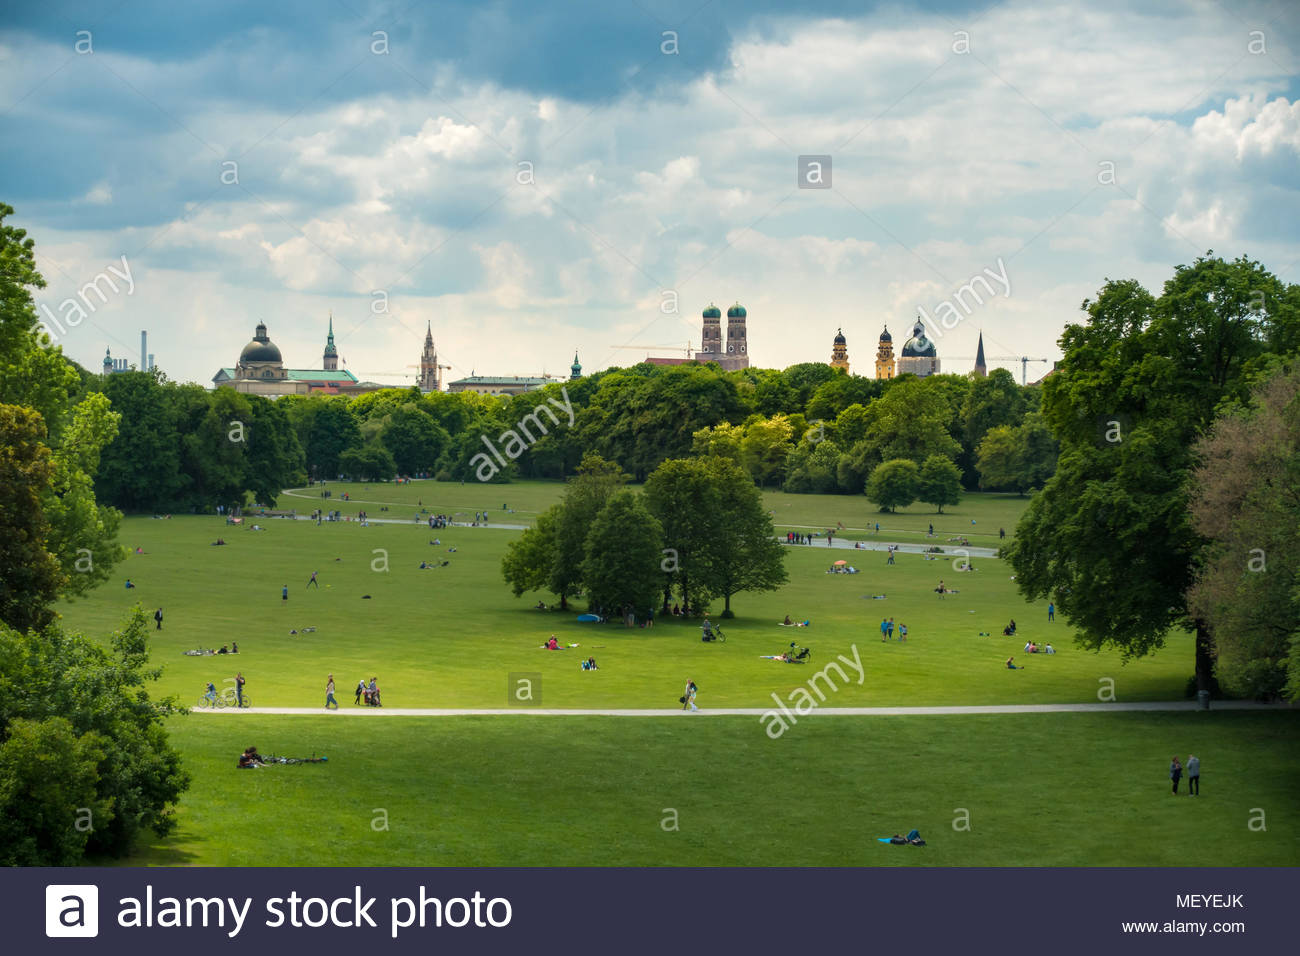 Englischer Garten in Munich Bavaria Germany - Stock Image